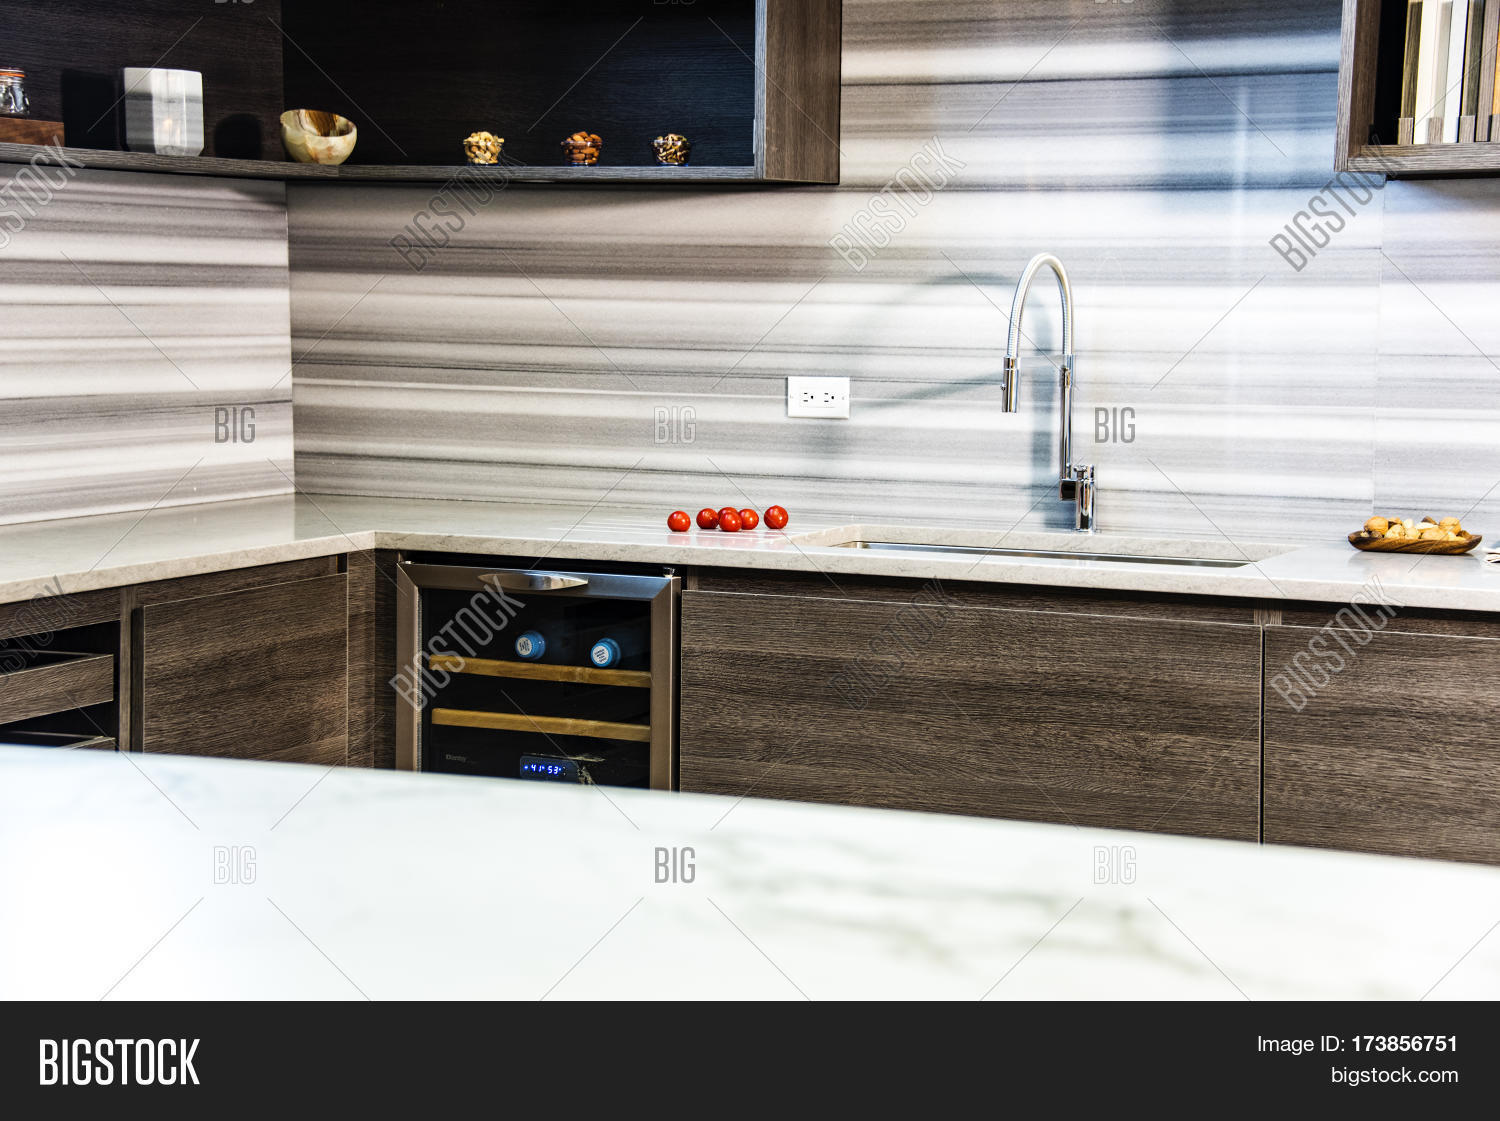 Modern Luxury Kitchen Interior With Granite Counter Top. Countertop Concept.